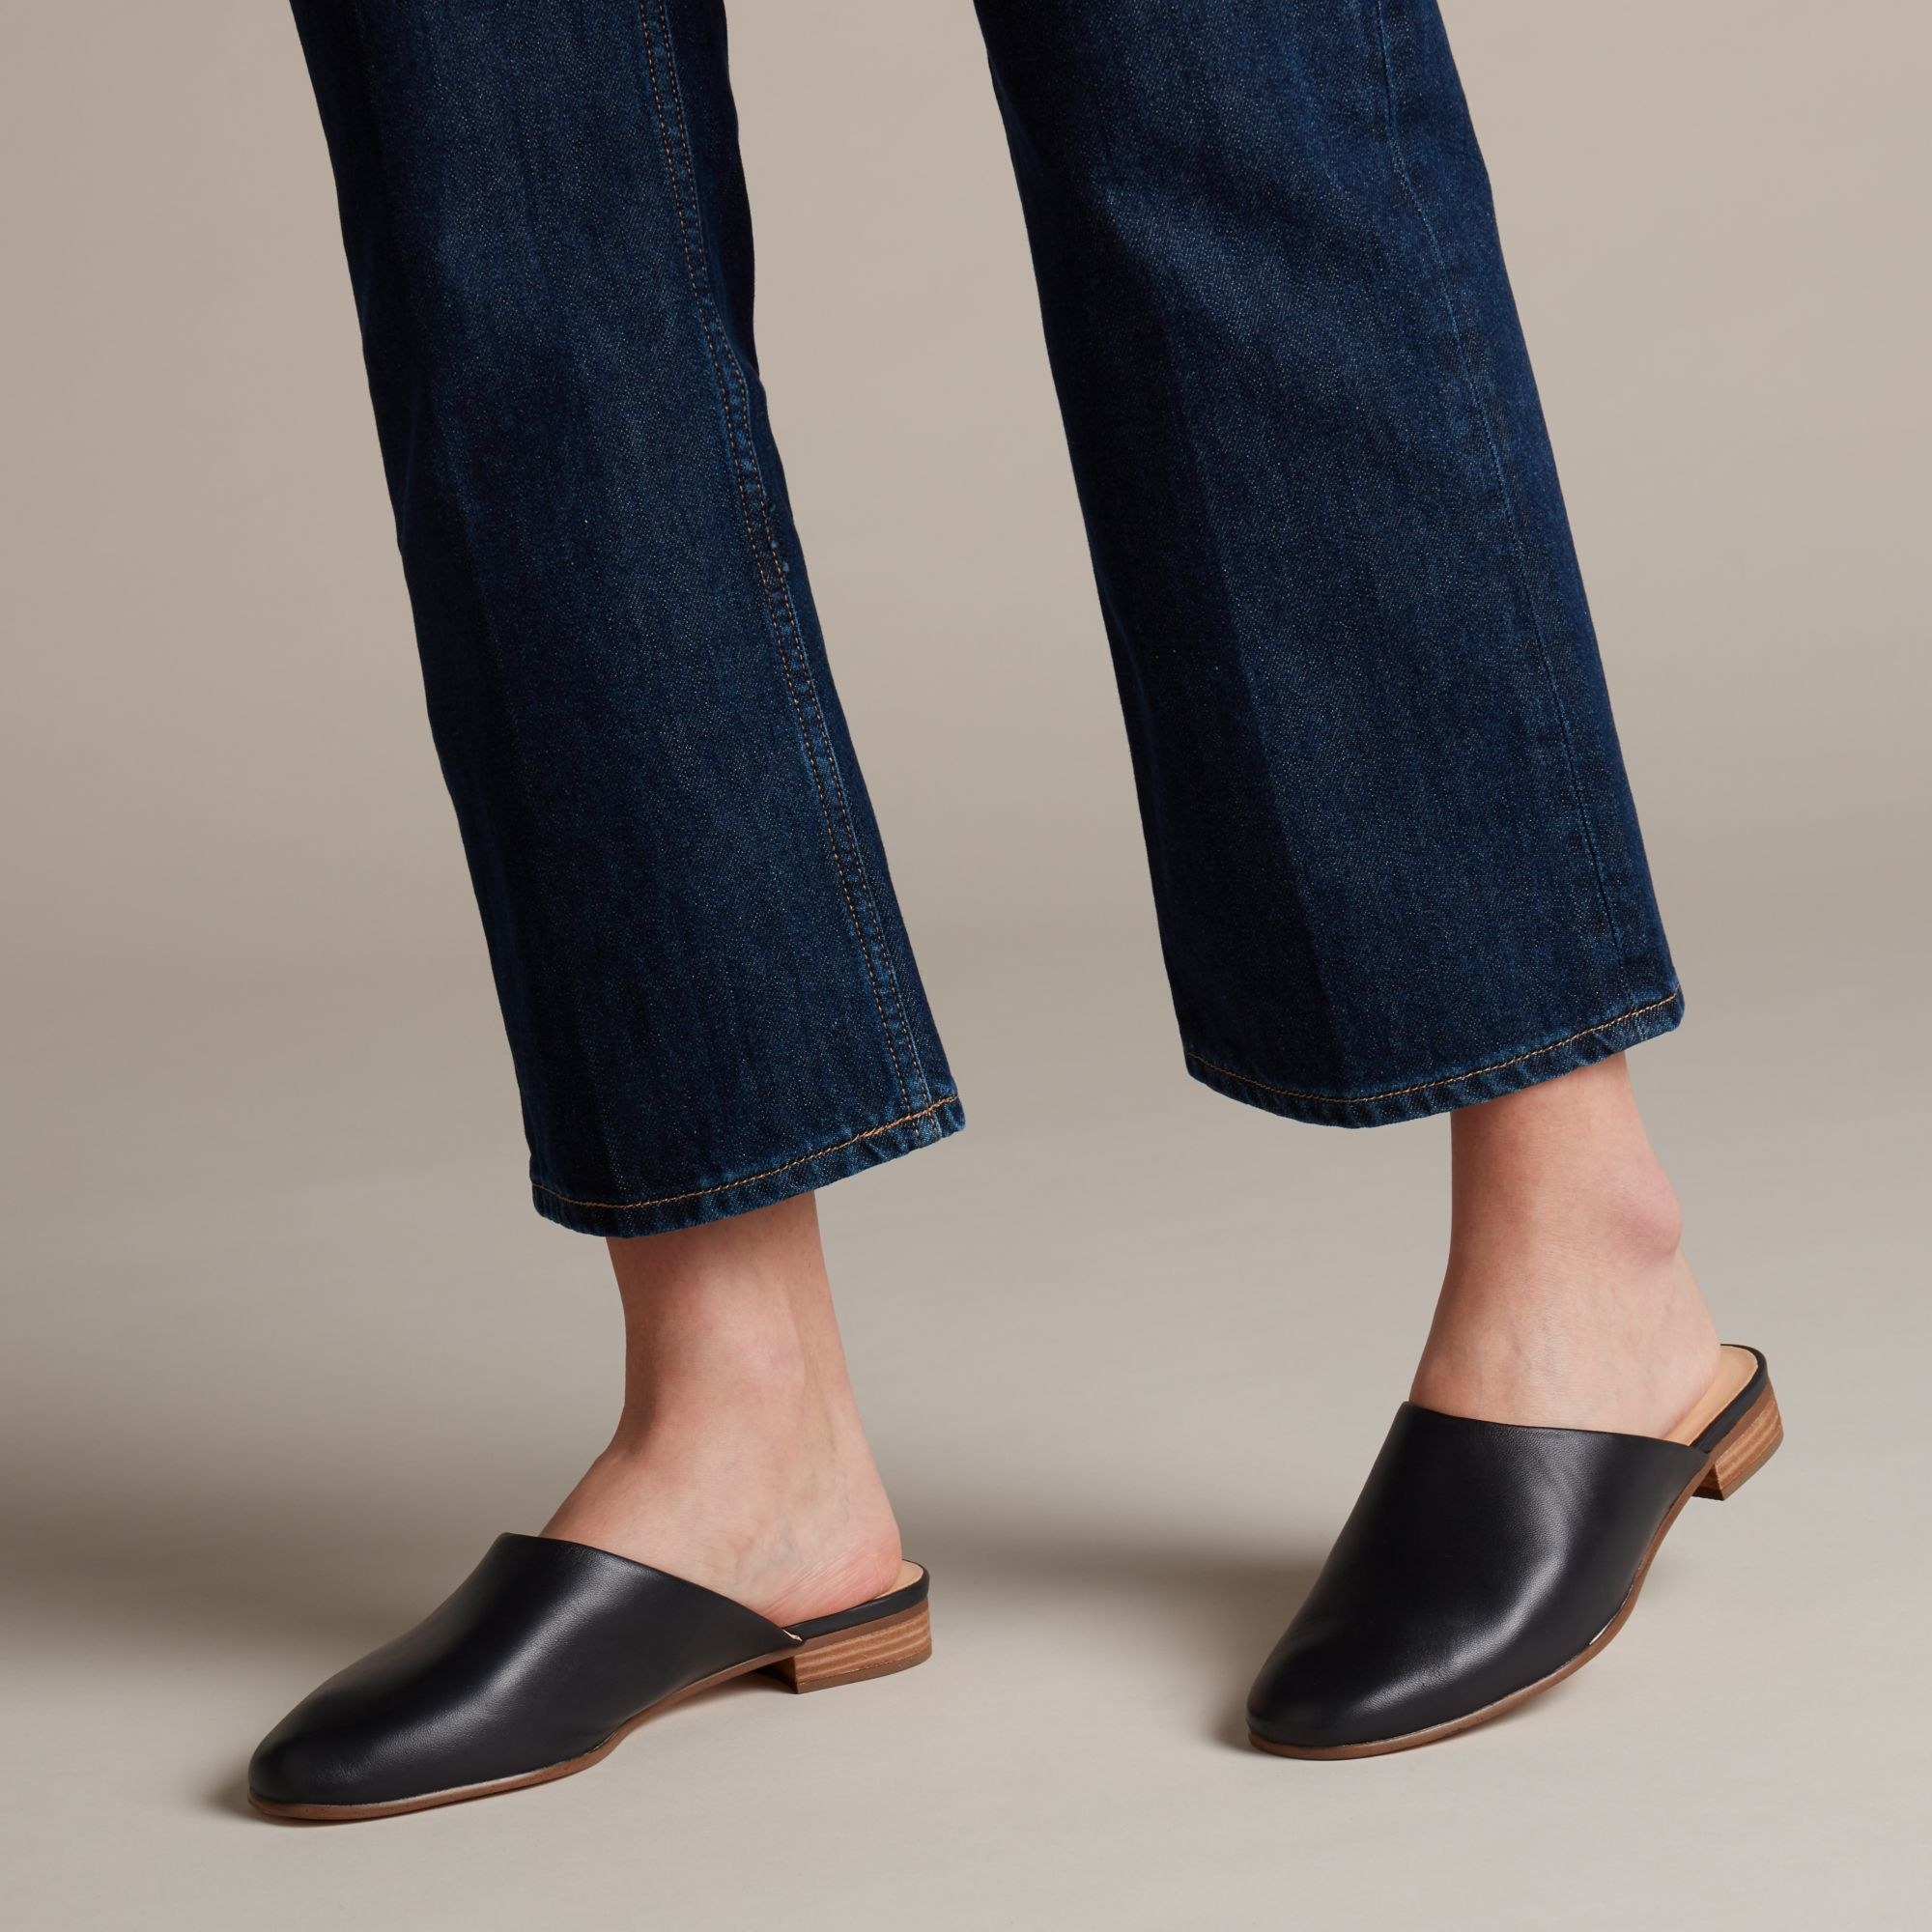 close toed mules with small heel